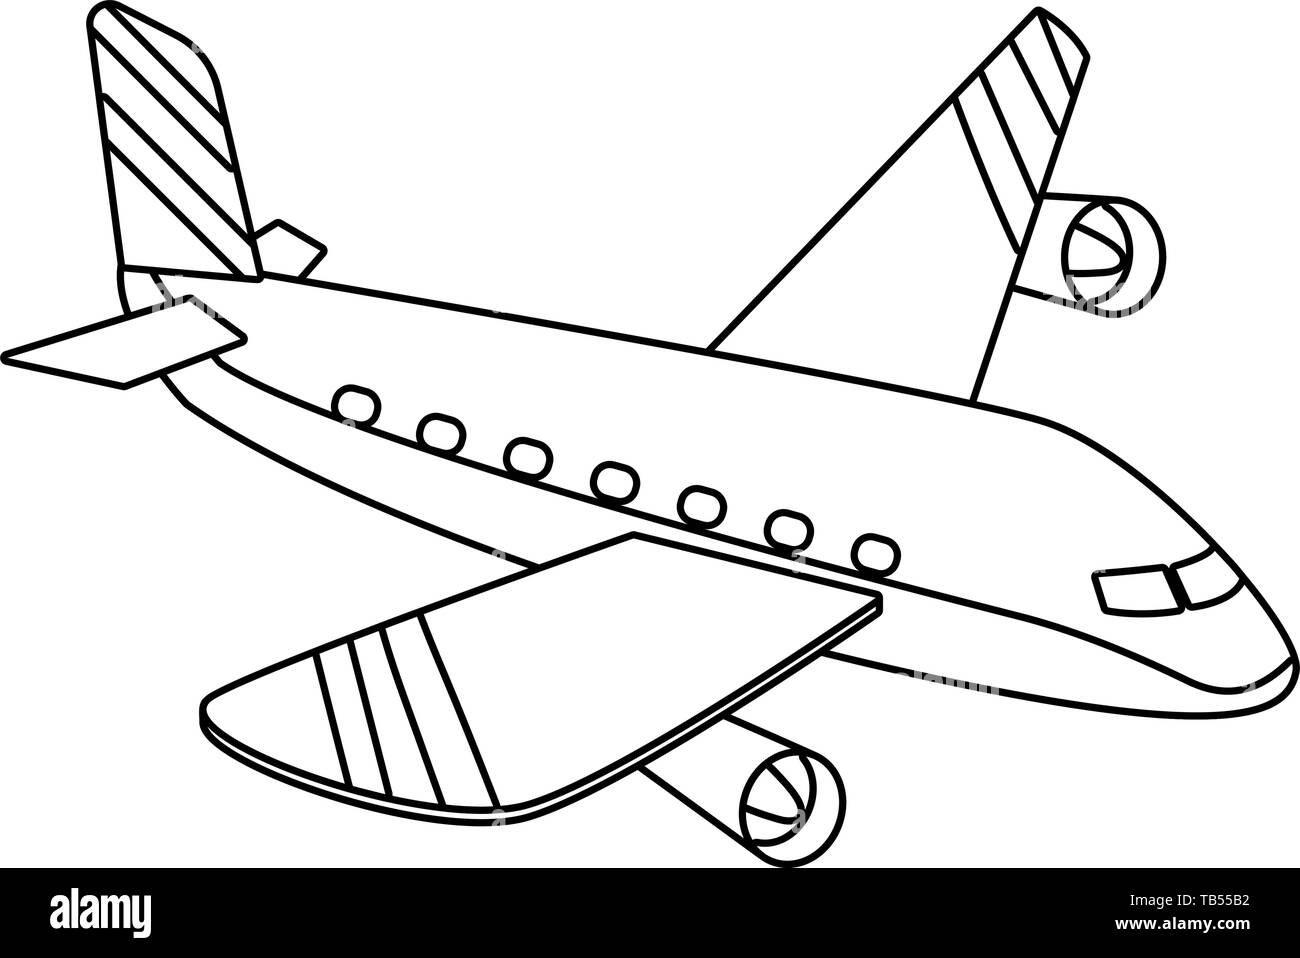 Cartoon Aircraft High Resolution Stock Photography And Images Alamy